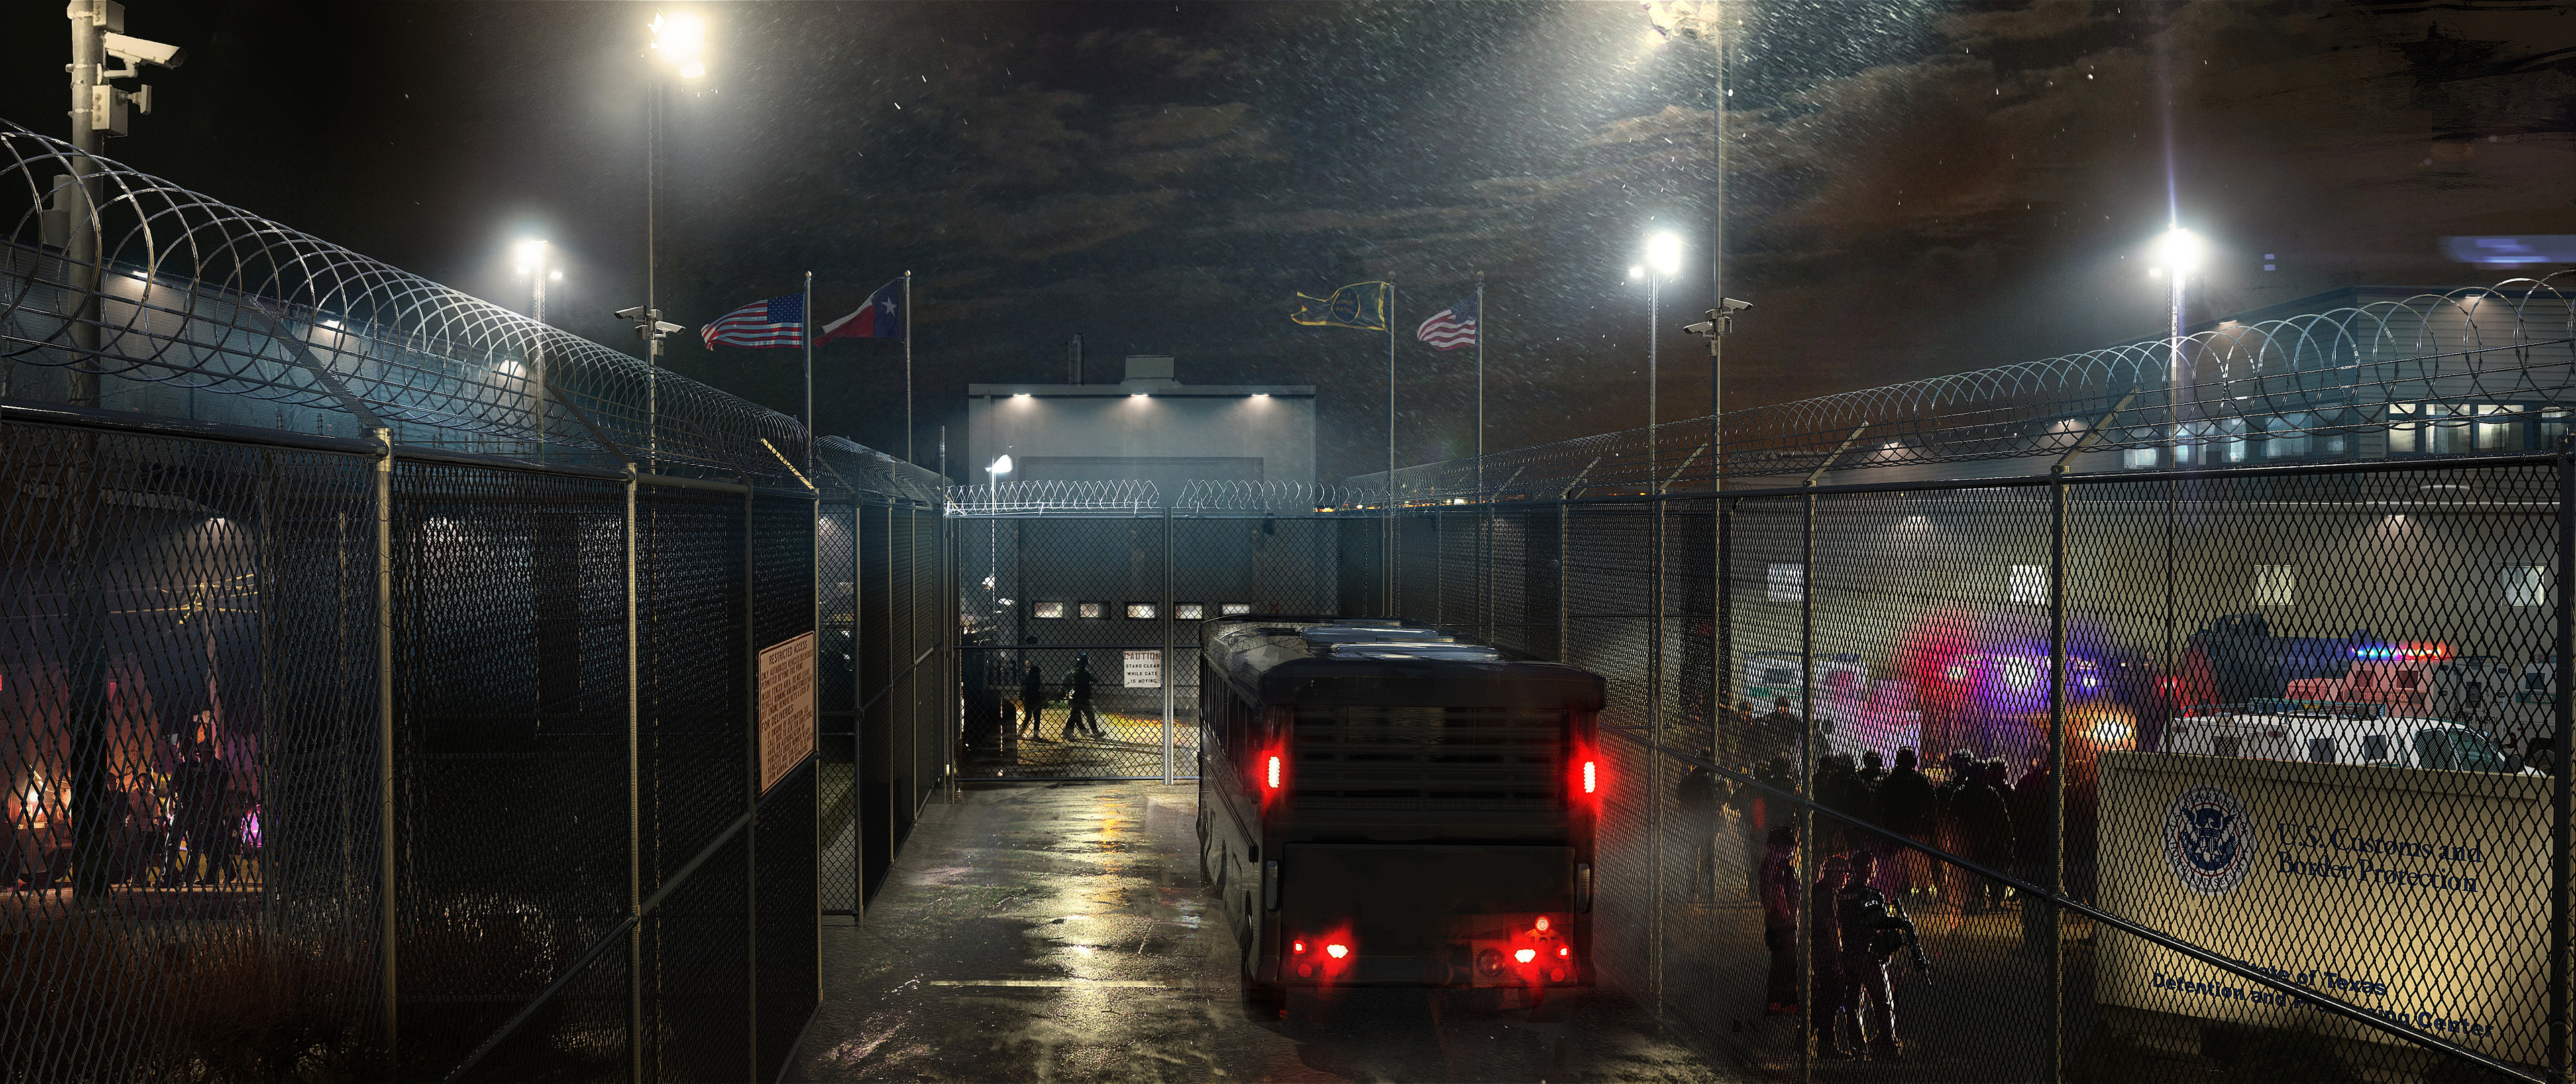 Border Patrol Detention Center